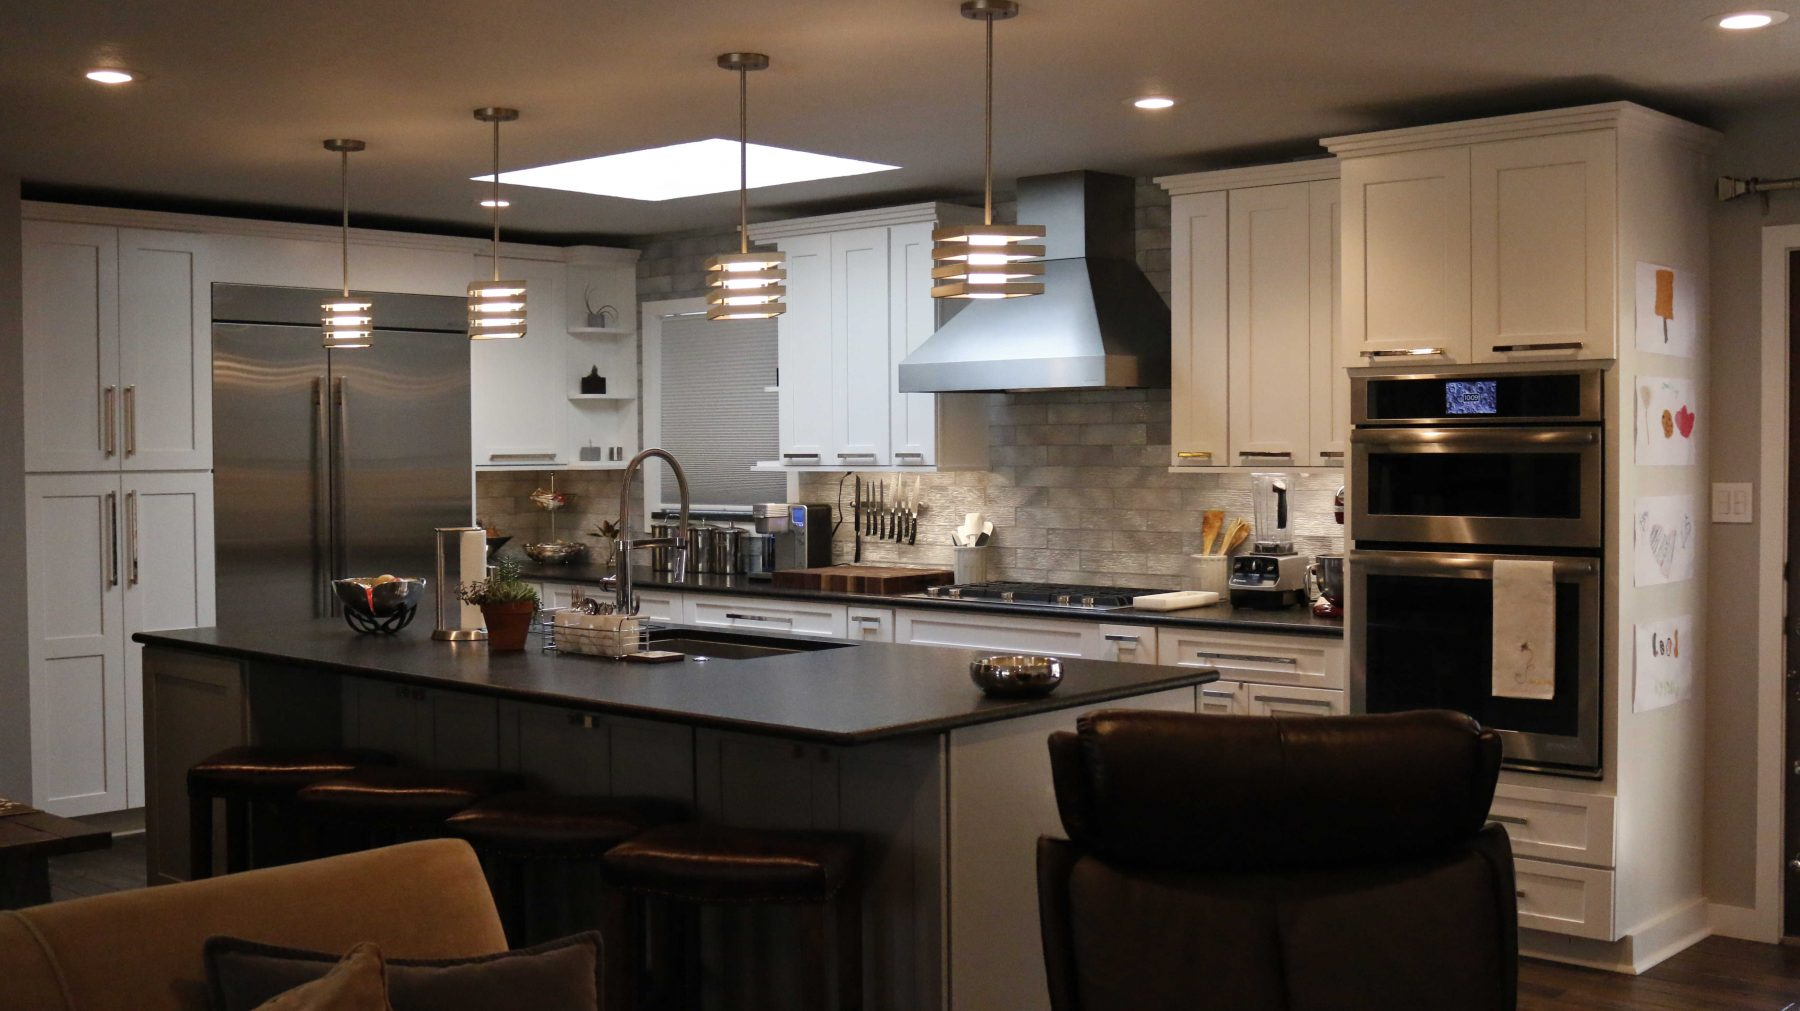 Uncategorized kitchen remodeling knoxville tn for Bath remodel knoxville